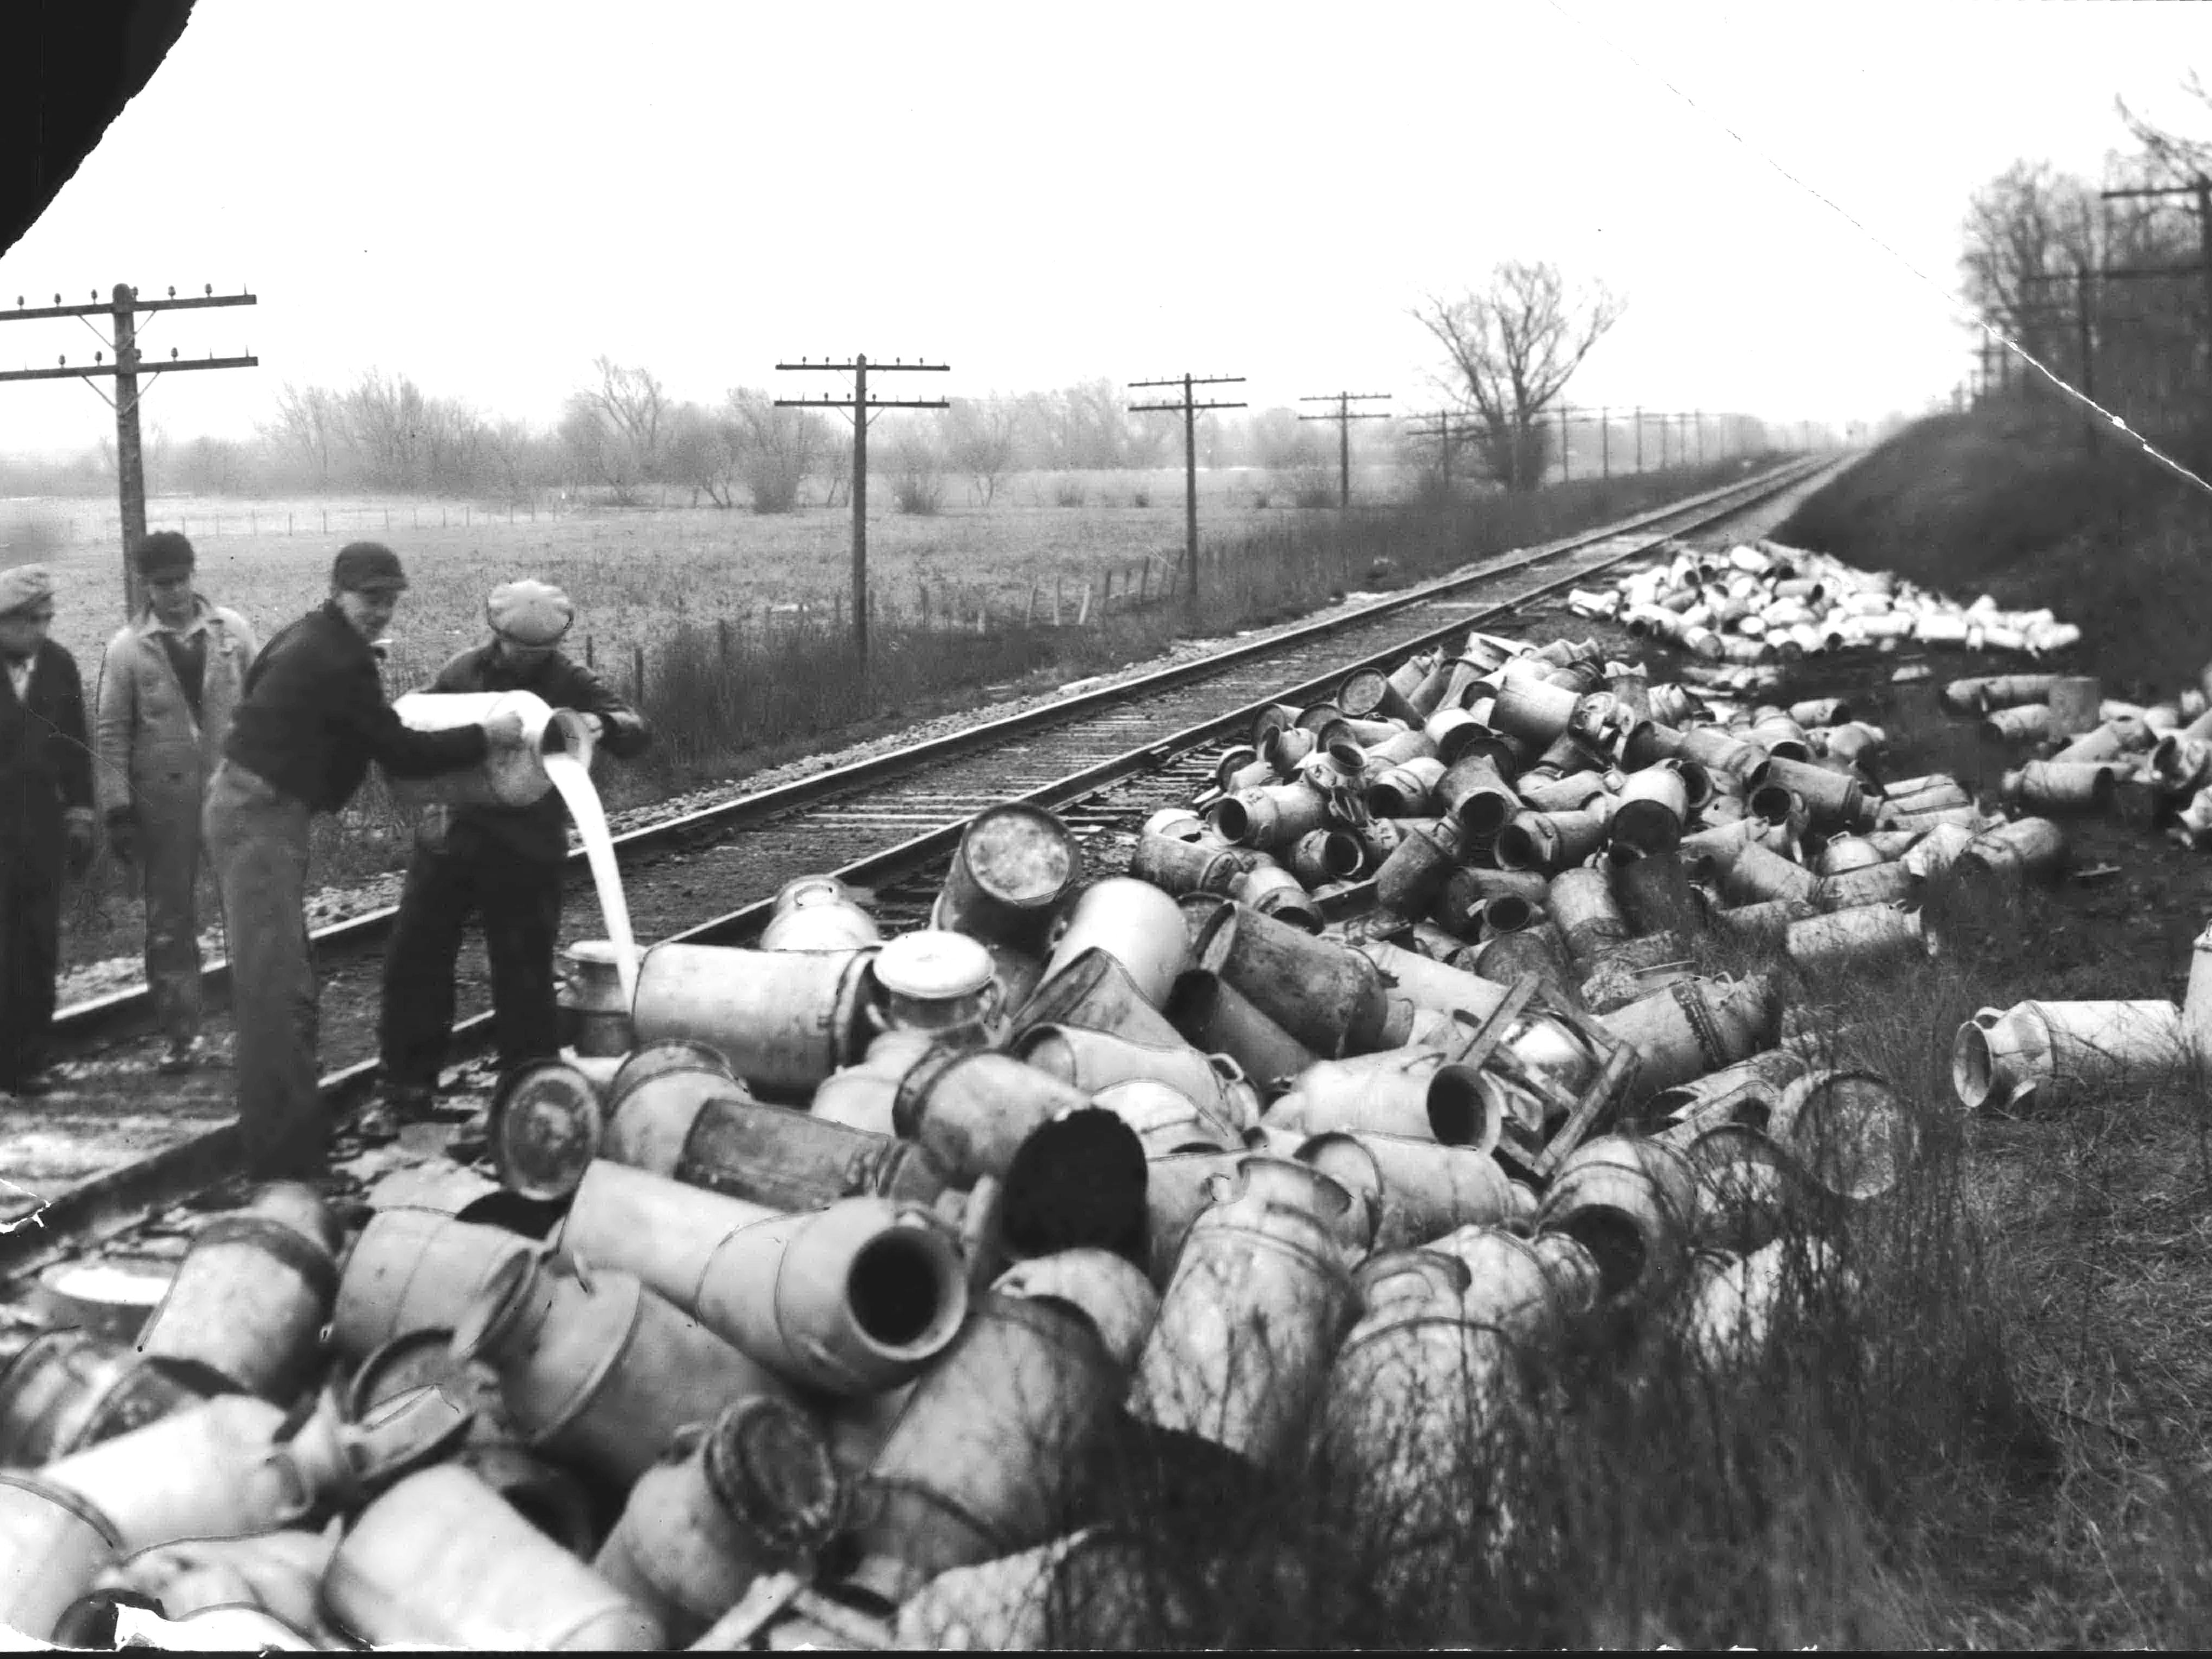 As the Great Depression took hold in the late 1920s, many farmers saw their milk prices drop and by 1933, prices were less than half what they had been just three years prior. Farmers reacted with milk strikes, and the protests often turned violent. This is the scene after a crowd of pickets stopped a Soo Line freight train near the city limits of Burlington by throwing ties across the tracks and firing shots. The pickets broke open seven cars and dumped the cans of milk along the tracks.